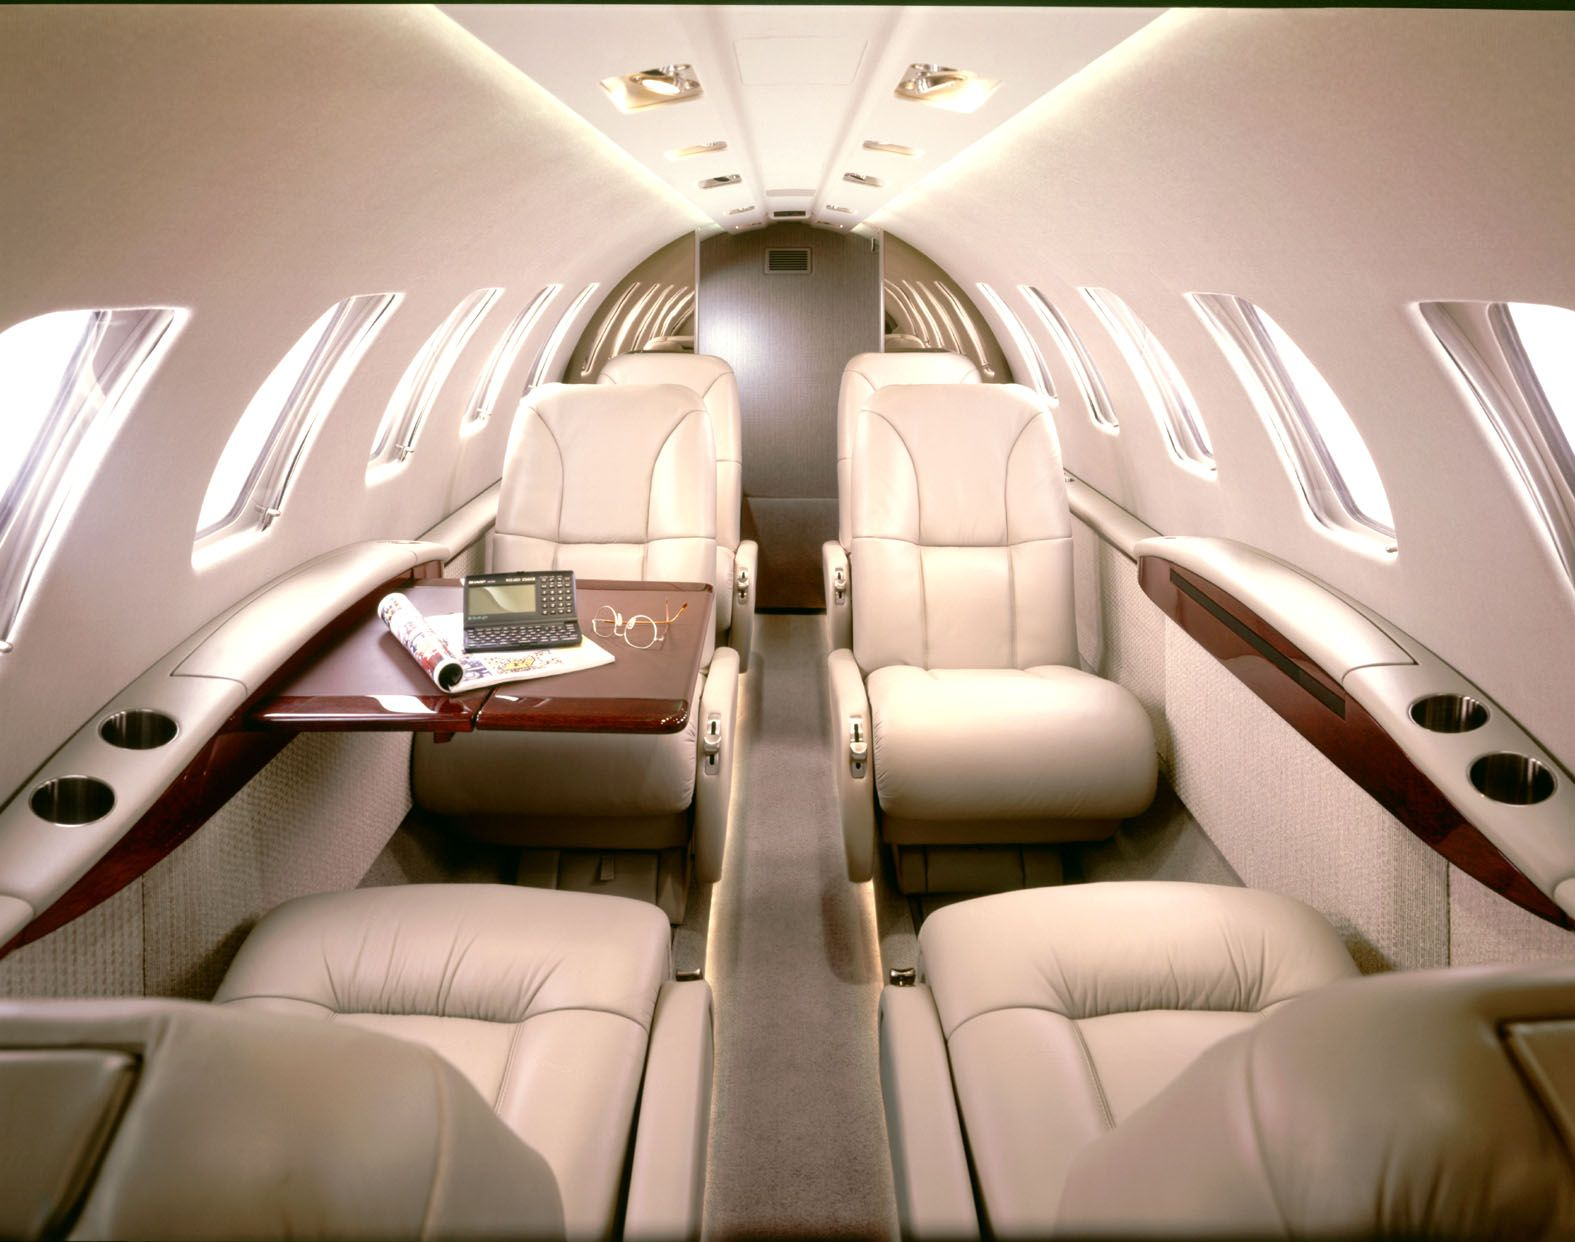 Citation Cj2 Airplane Interior Luxury Jets Cessna